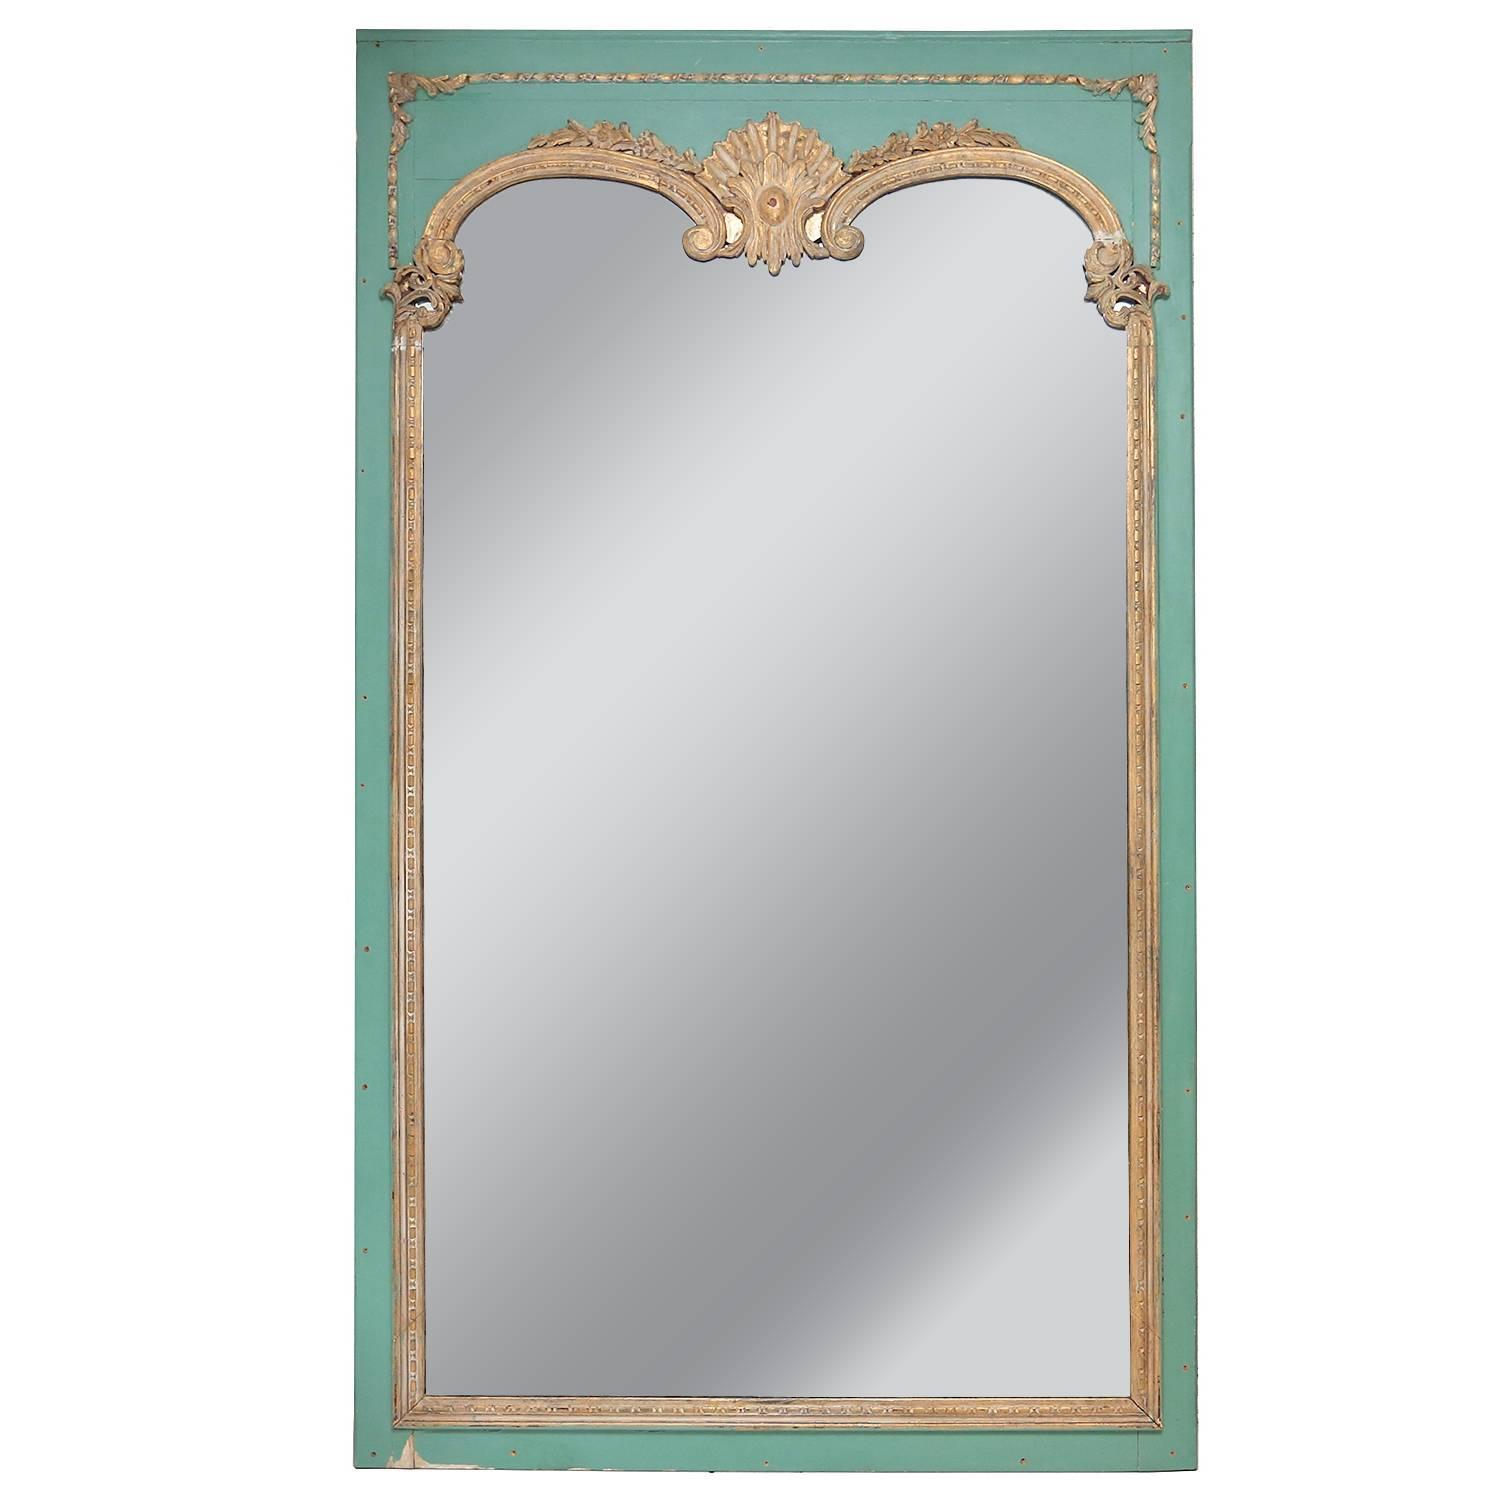 Oversize decorative theme park mirror at 1stdibs for Fancy floor mirrors